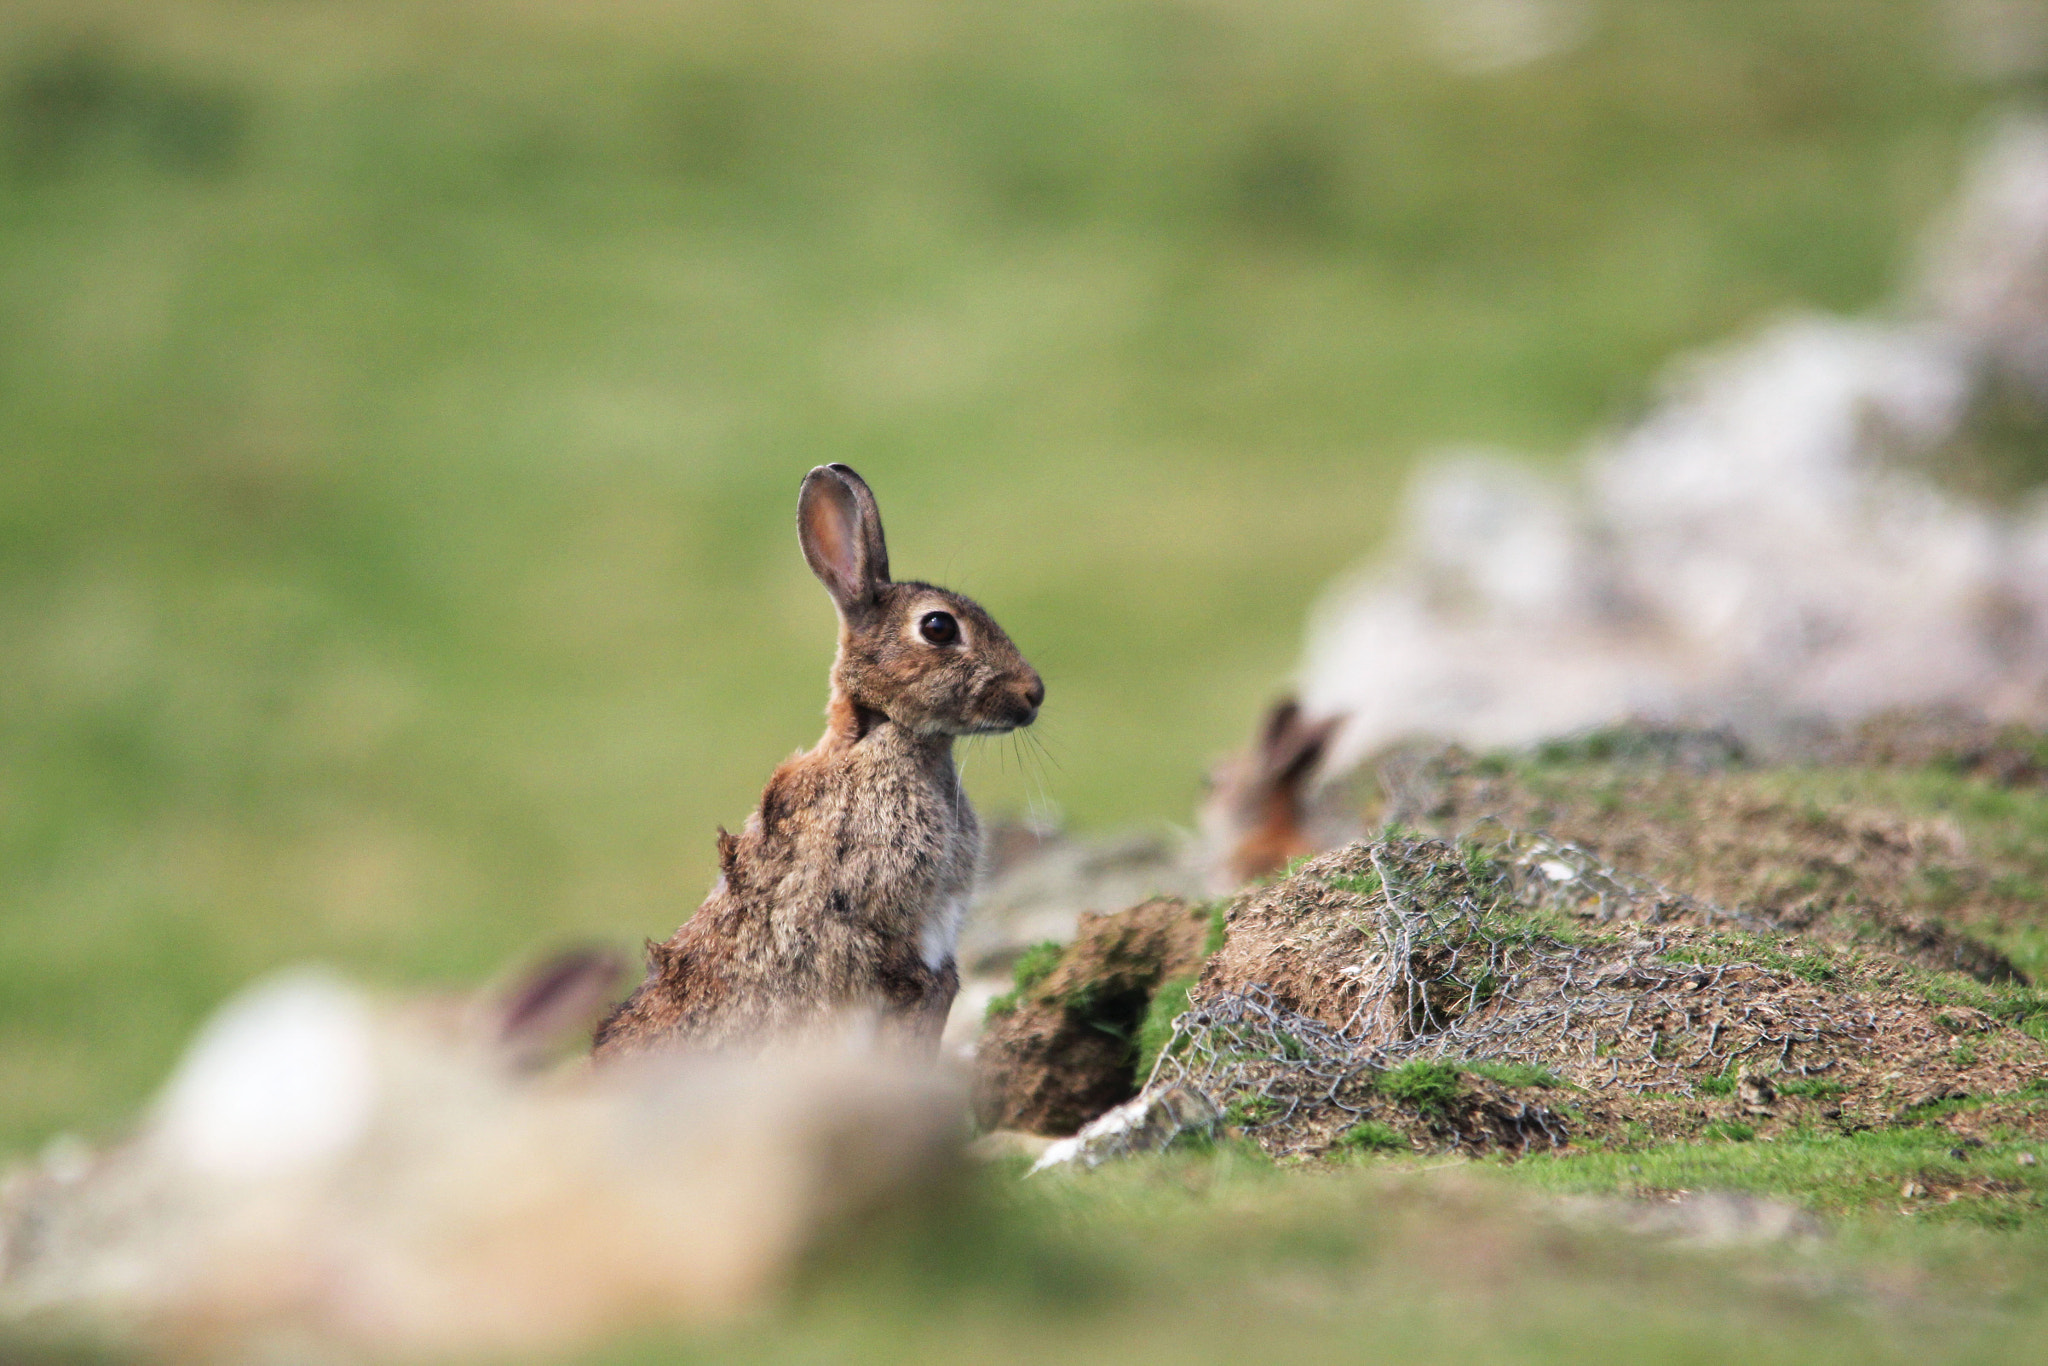 Photograph Rabbit on guard by Arnie Monteith on 500px